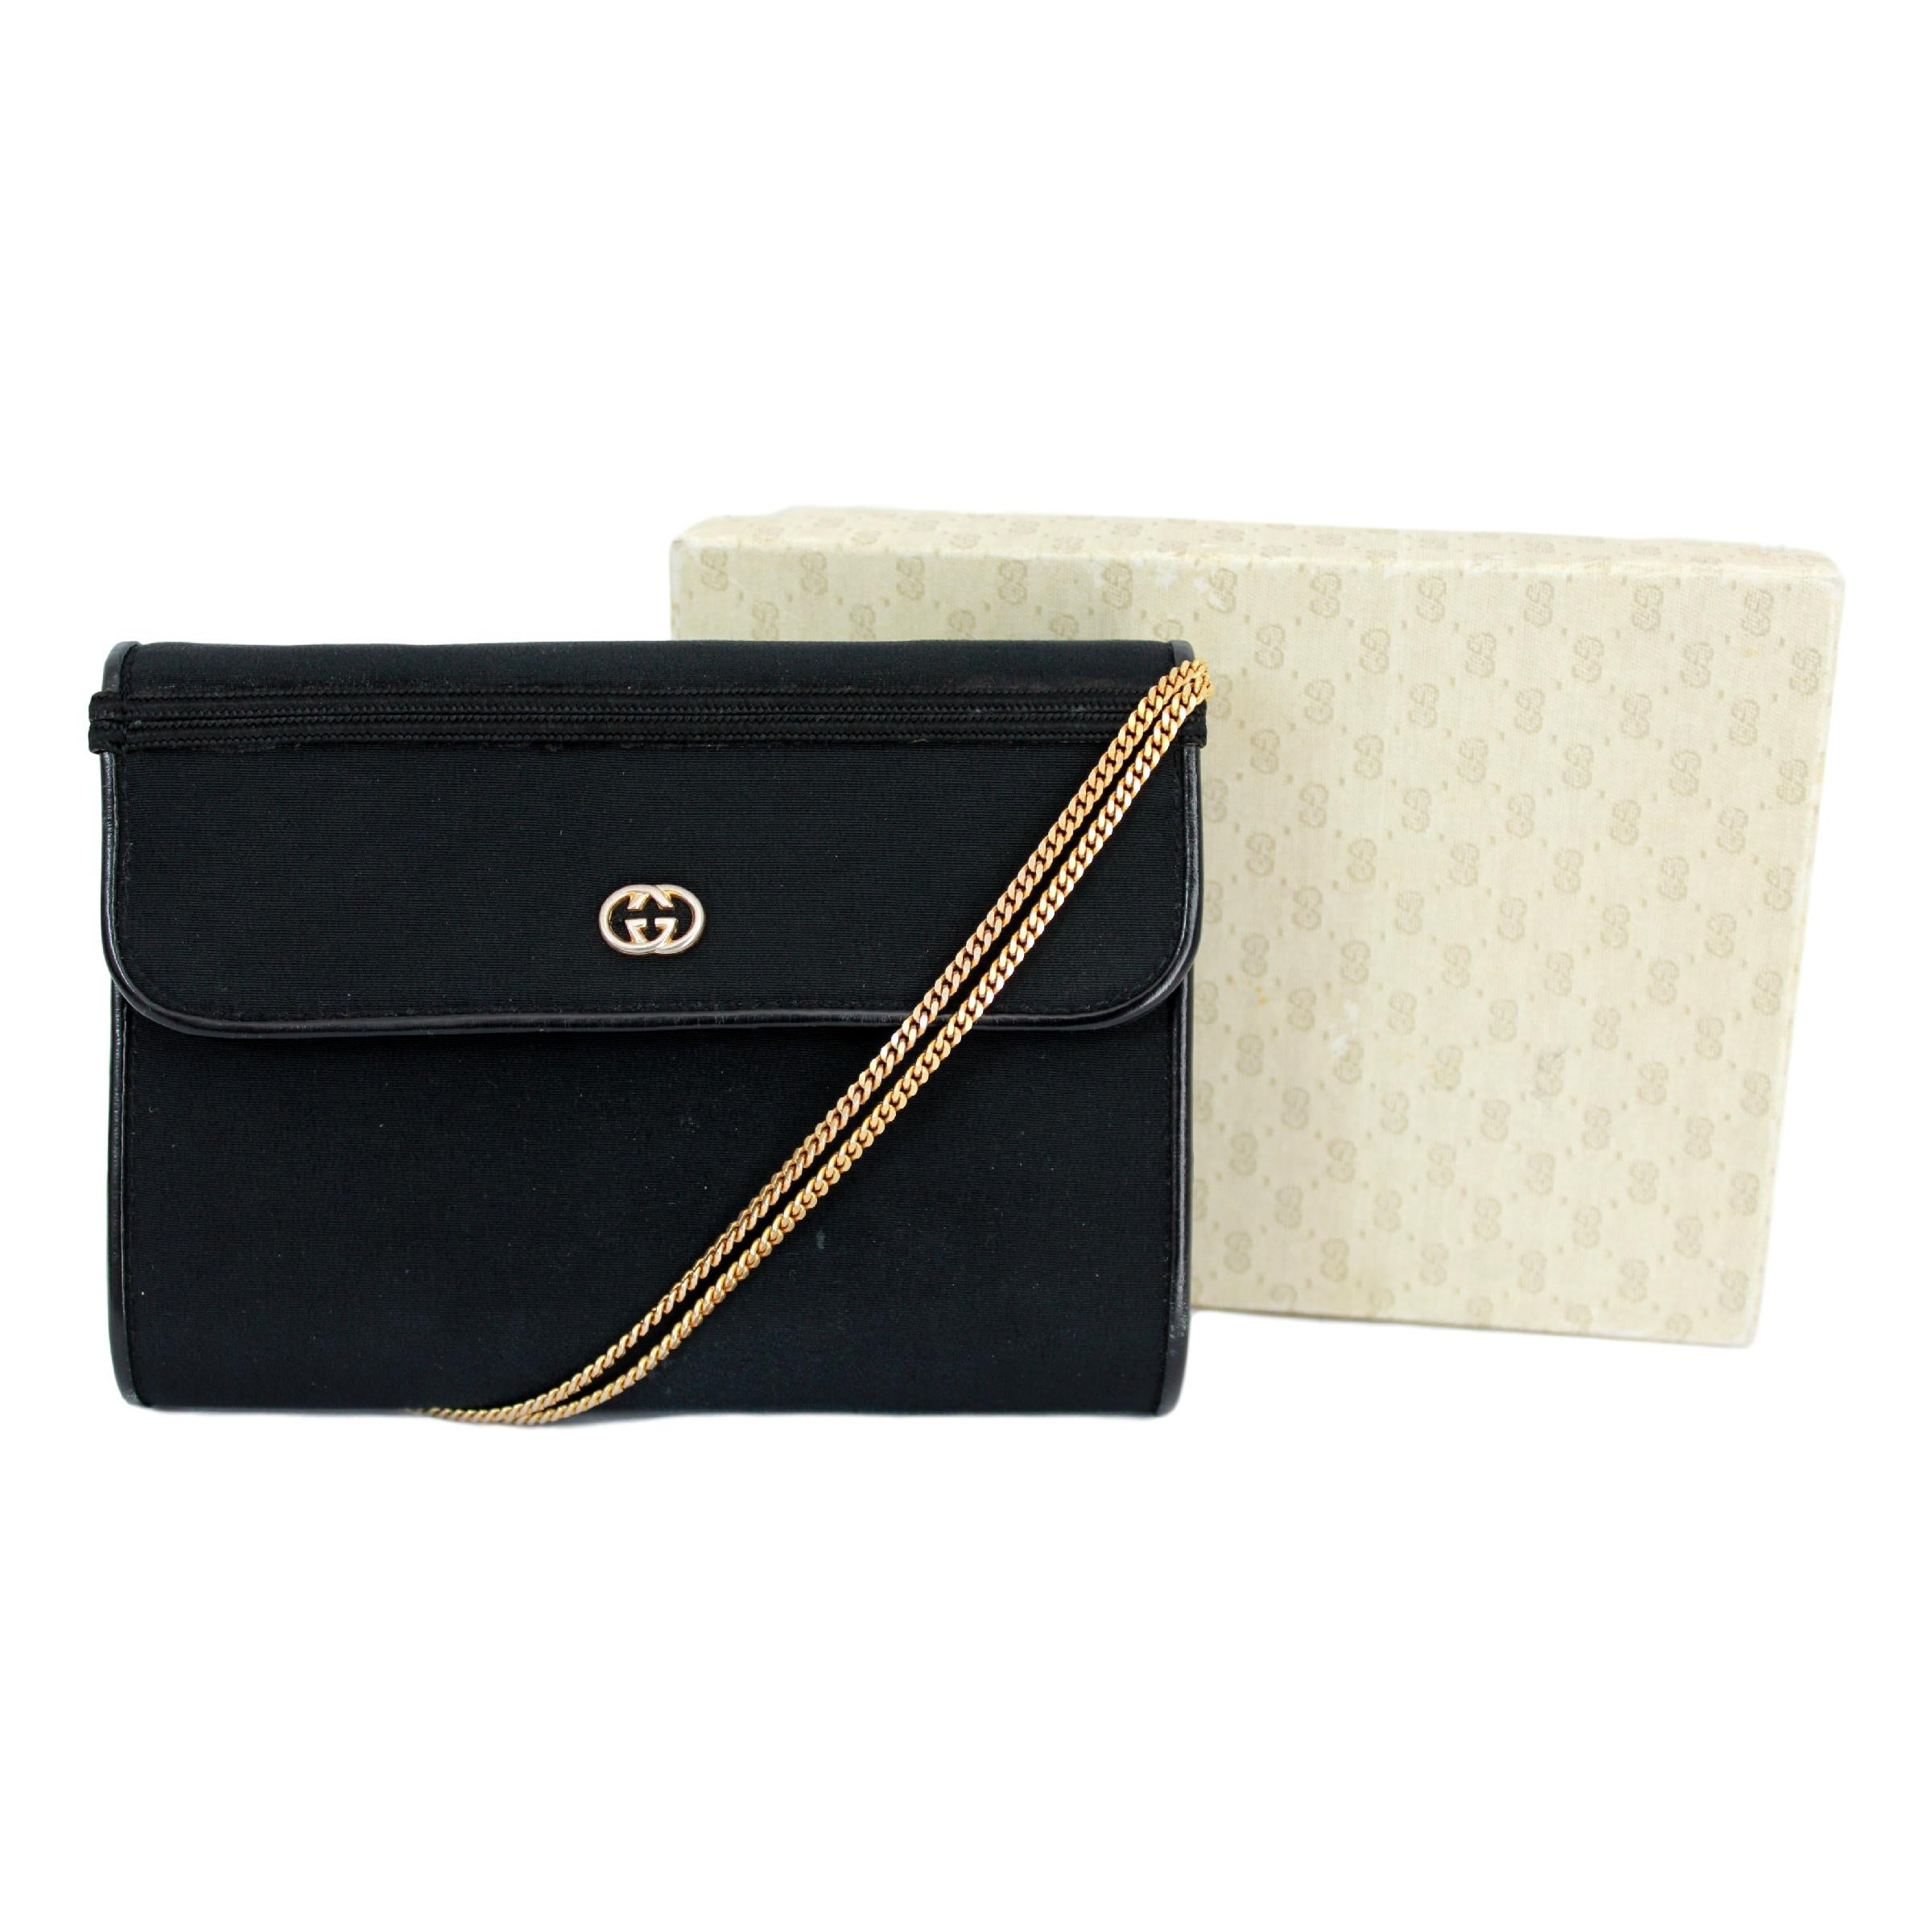 613288d3c63f Vintage Gucci Clutches - 102 For Sale at 1stdibs